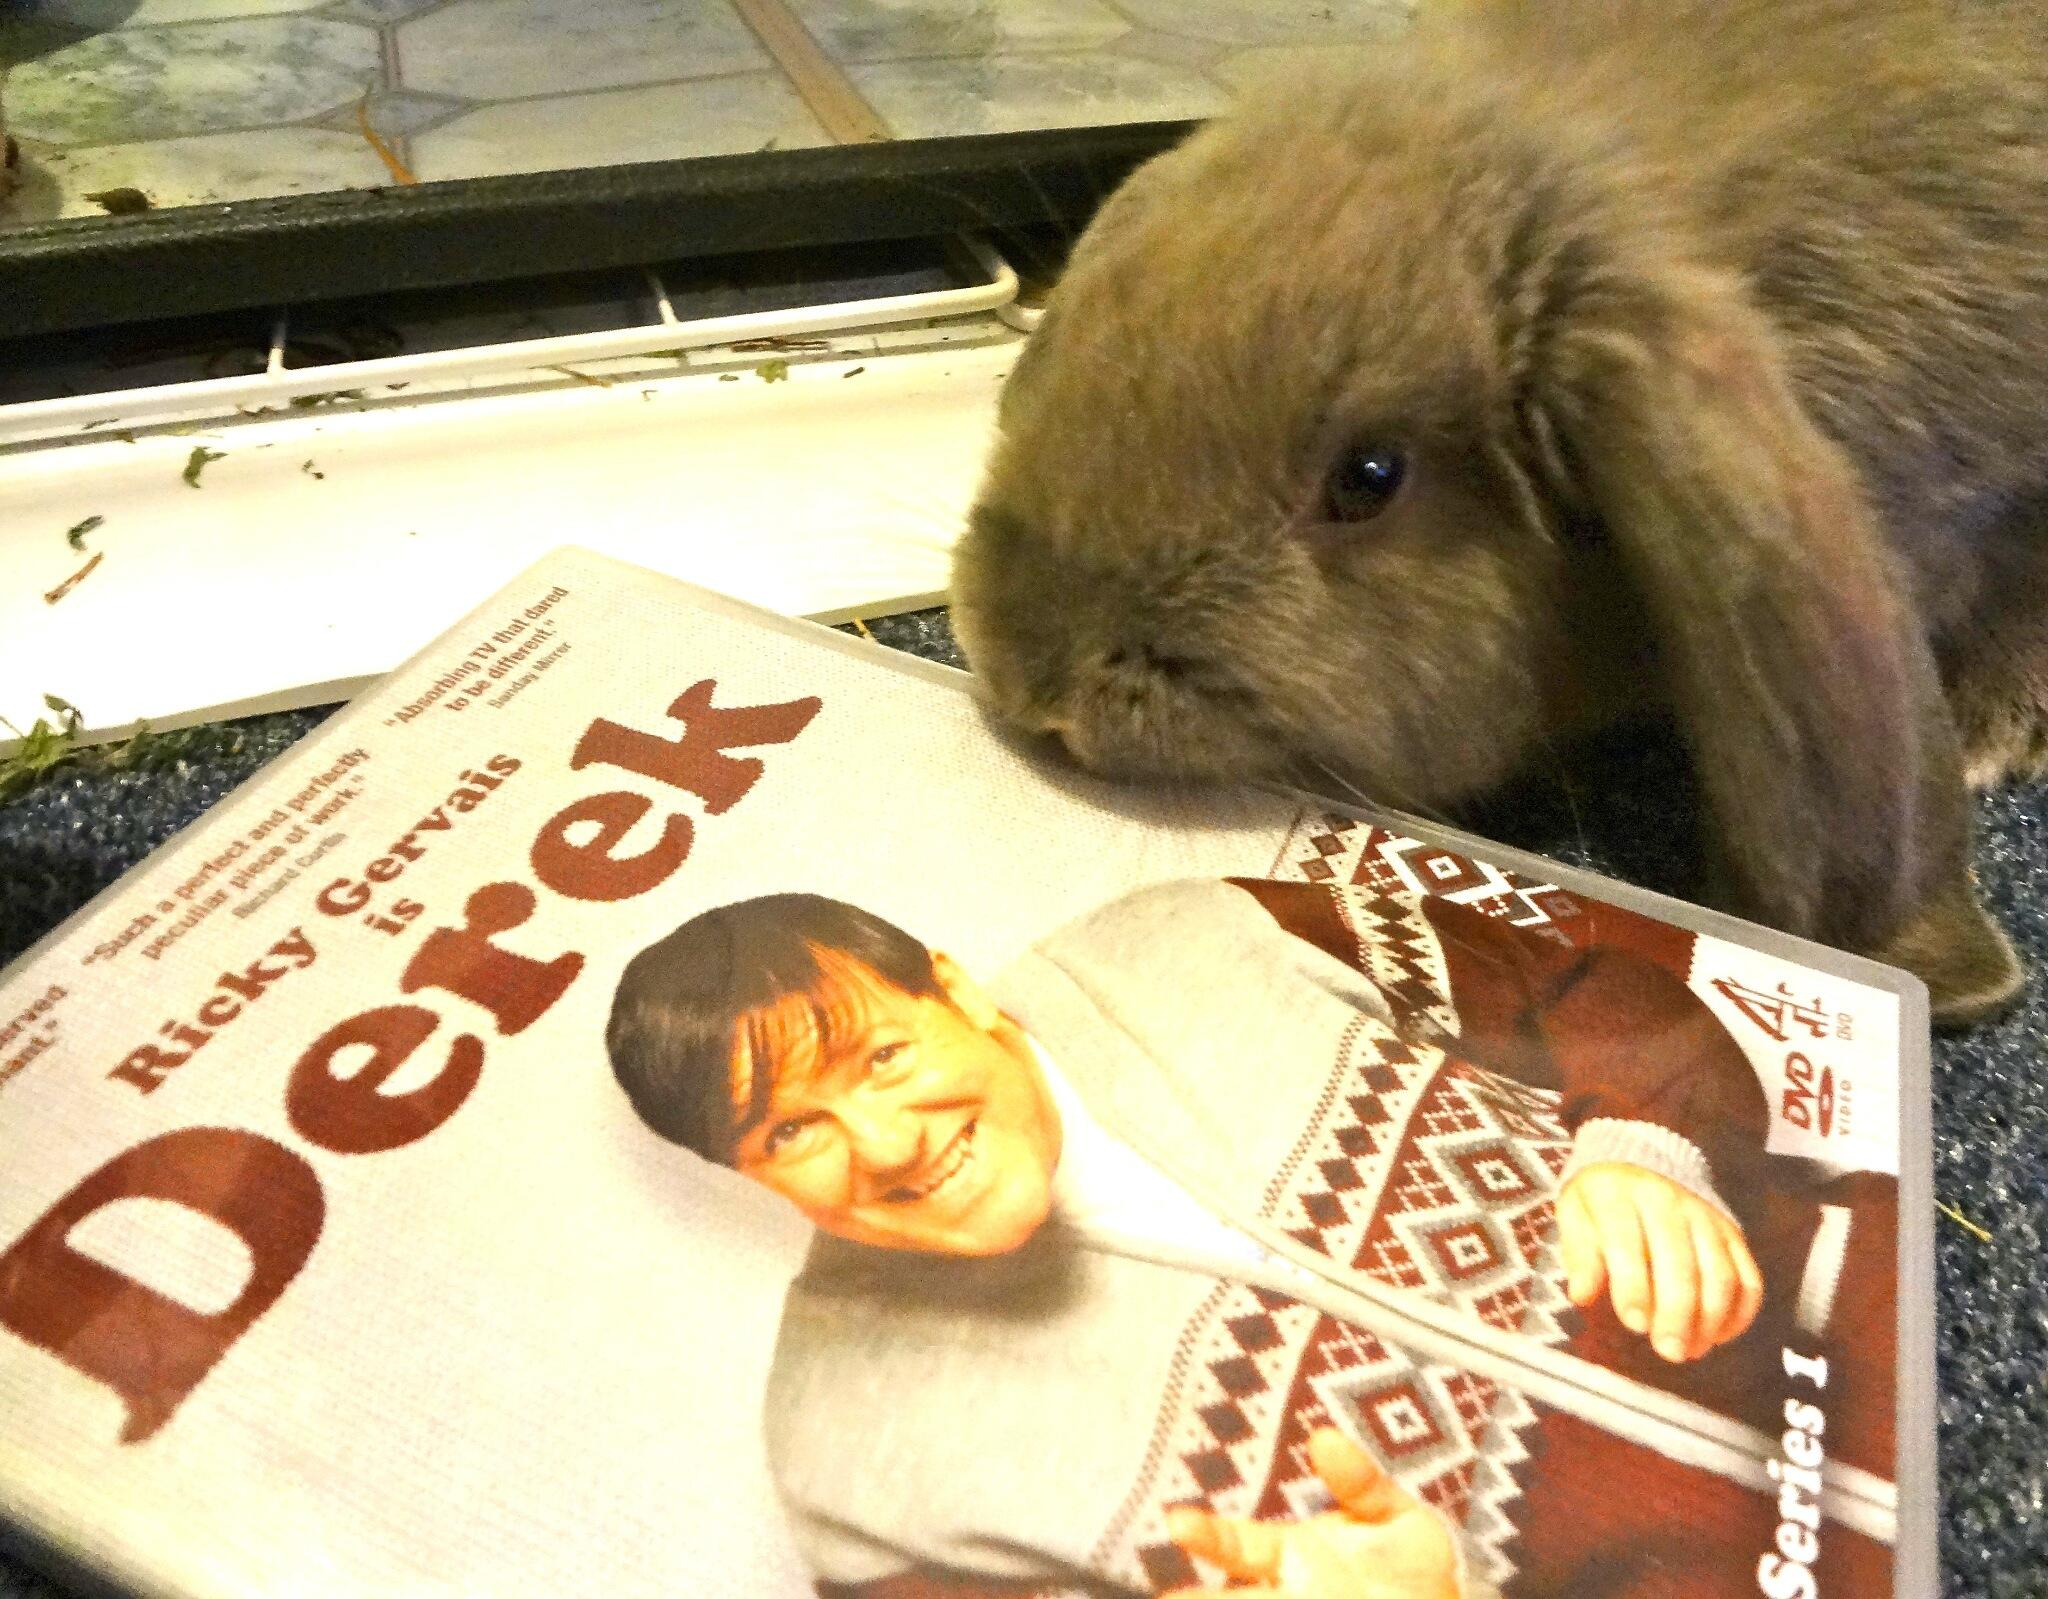 RT @Stitchn5saves15: @rickygervais So Hugo, what do you want to watch tonight? #Derek #kindnessismagic http://t.co/q6PWm3nlrl